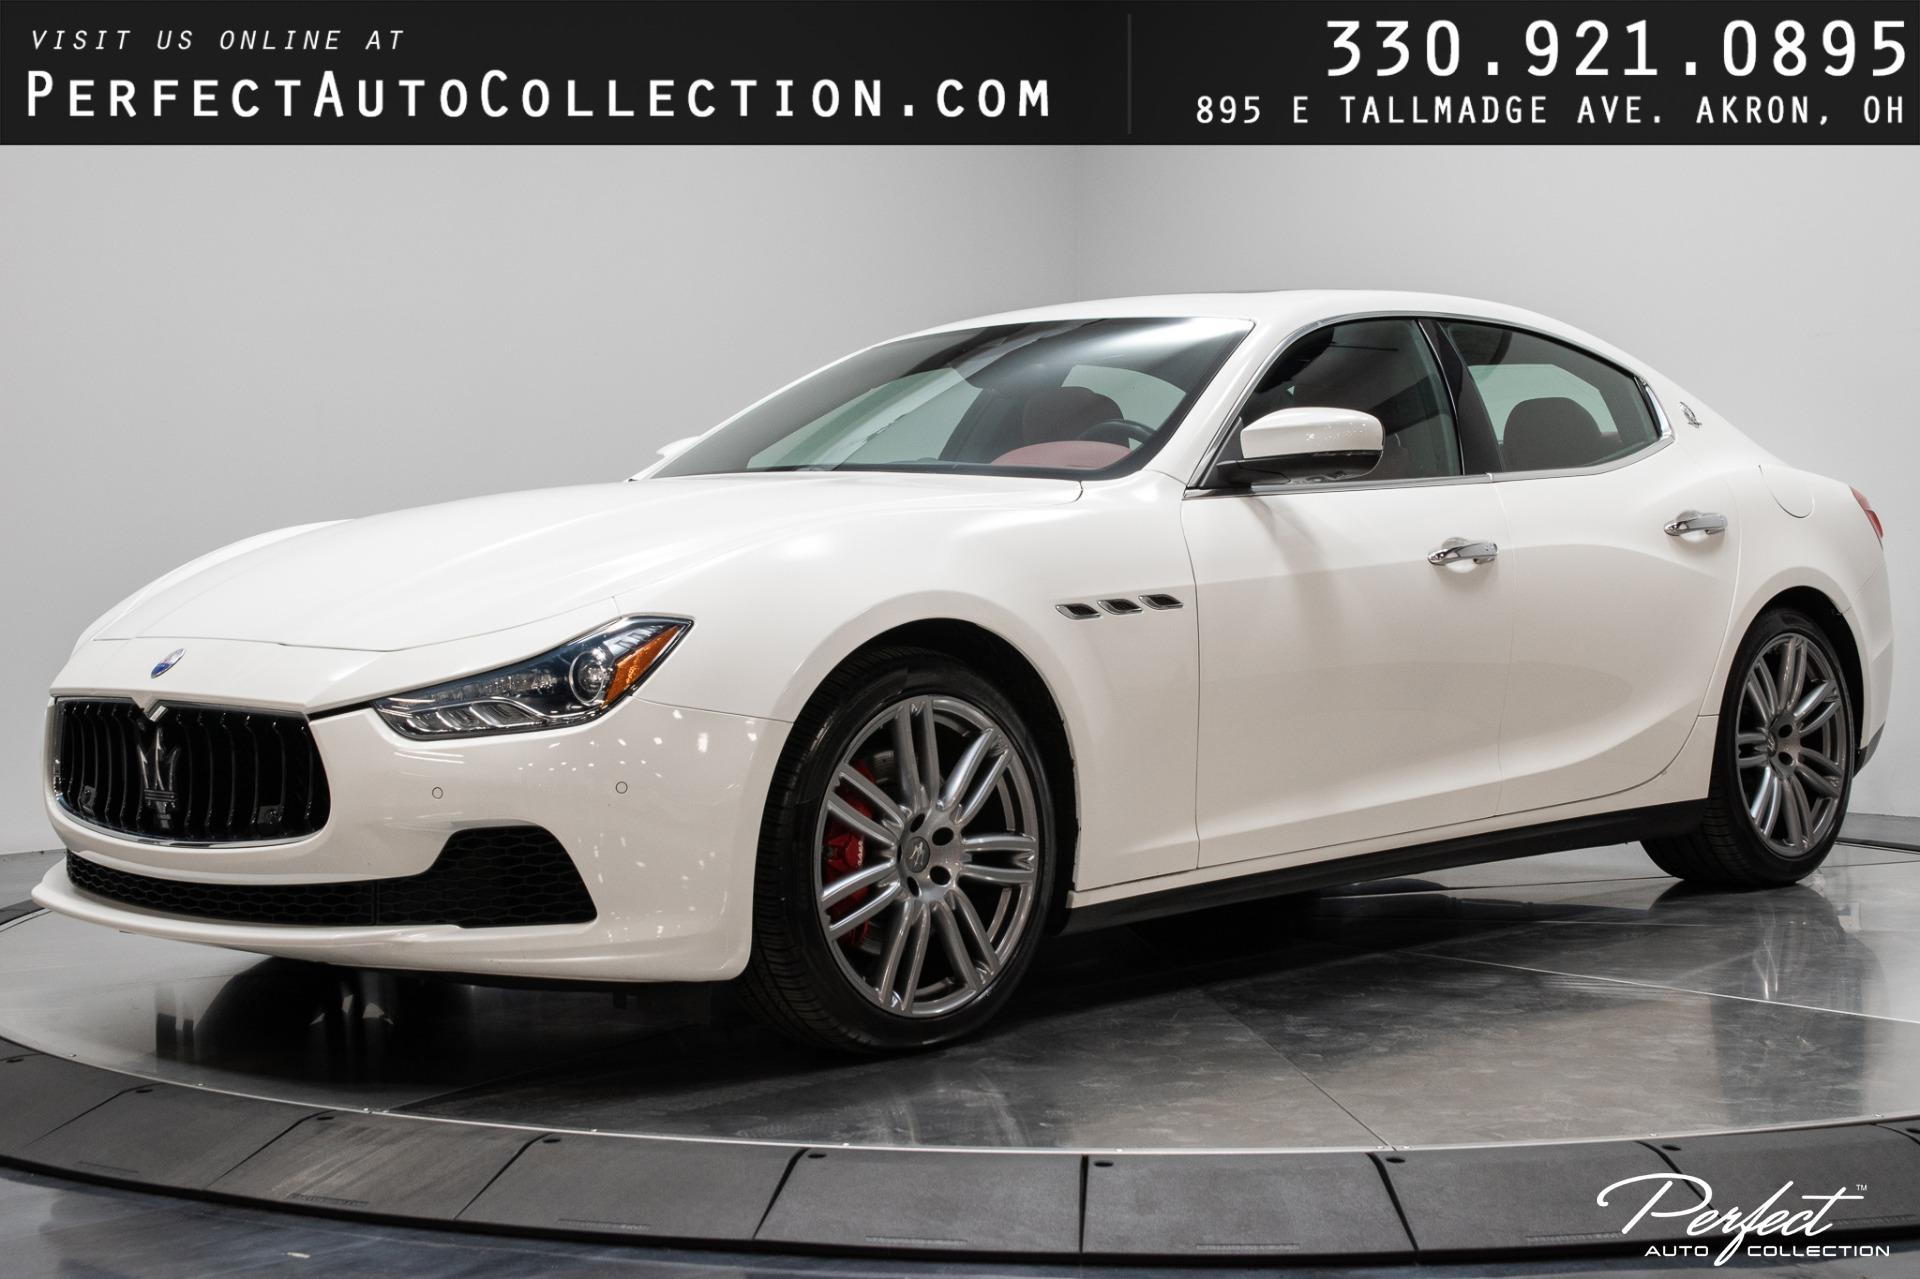 Used 2017 Maserati Ghibli S Q4 for sale $40,495 at Perfect Auto Collection in Akron OH 44310 1